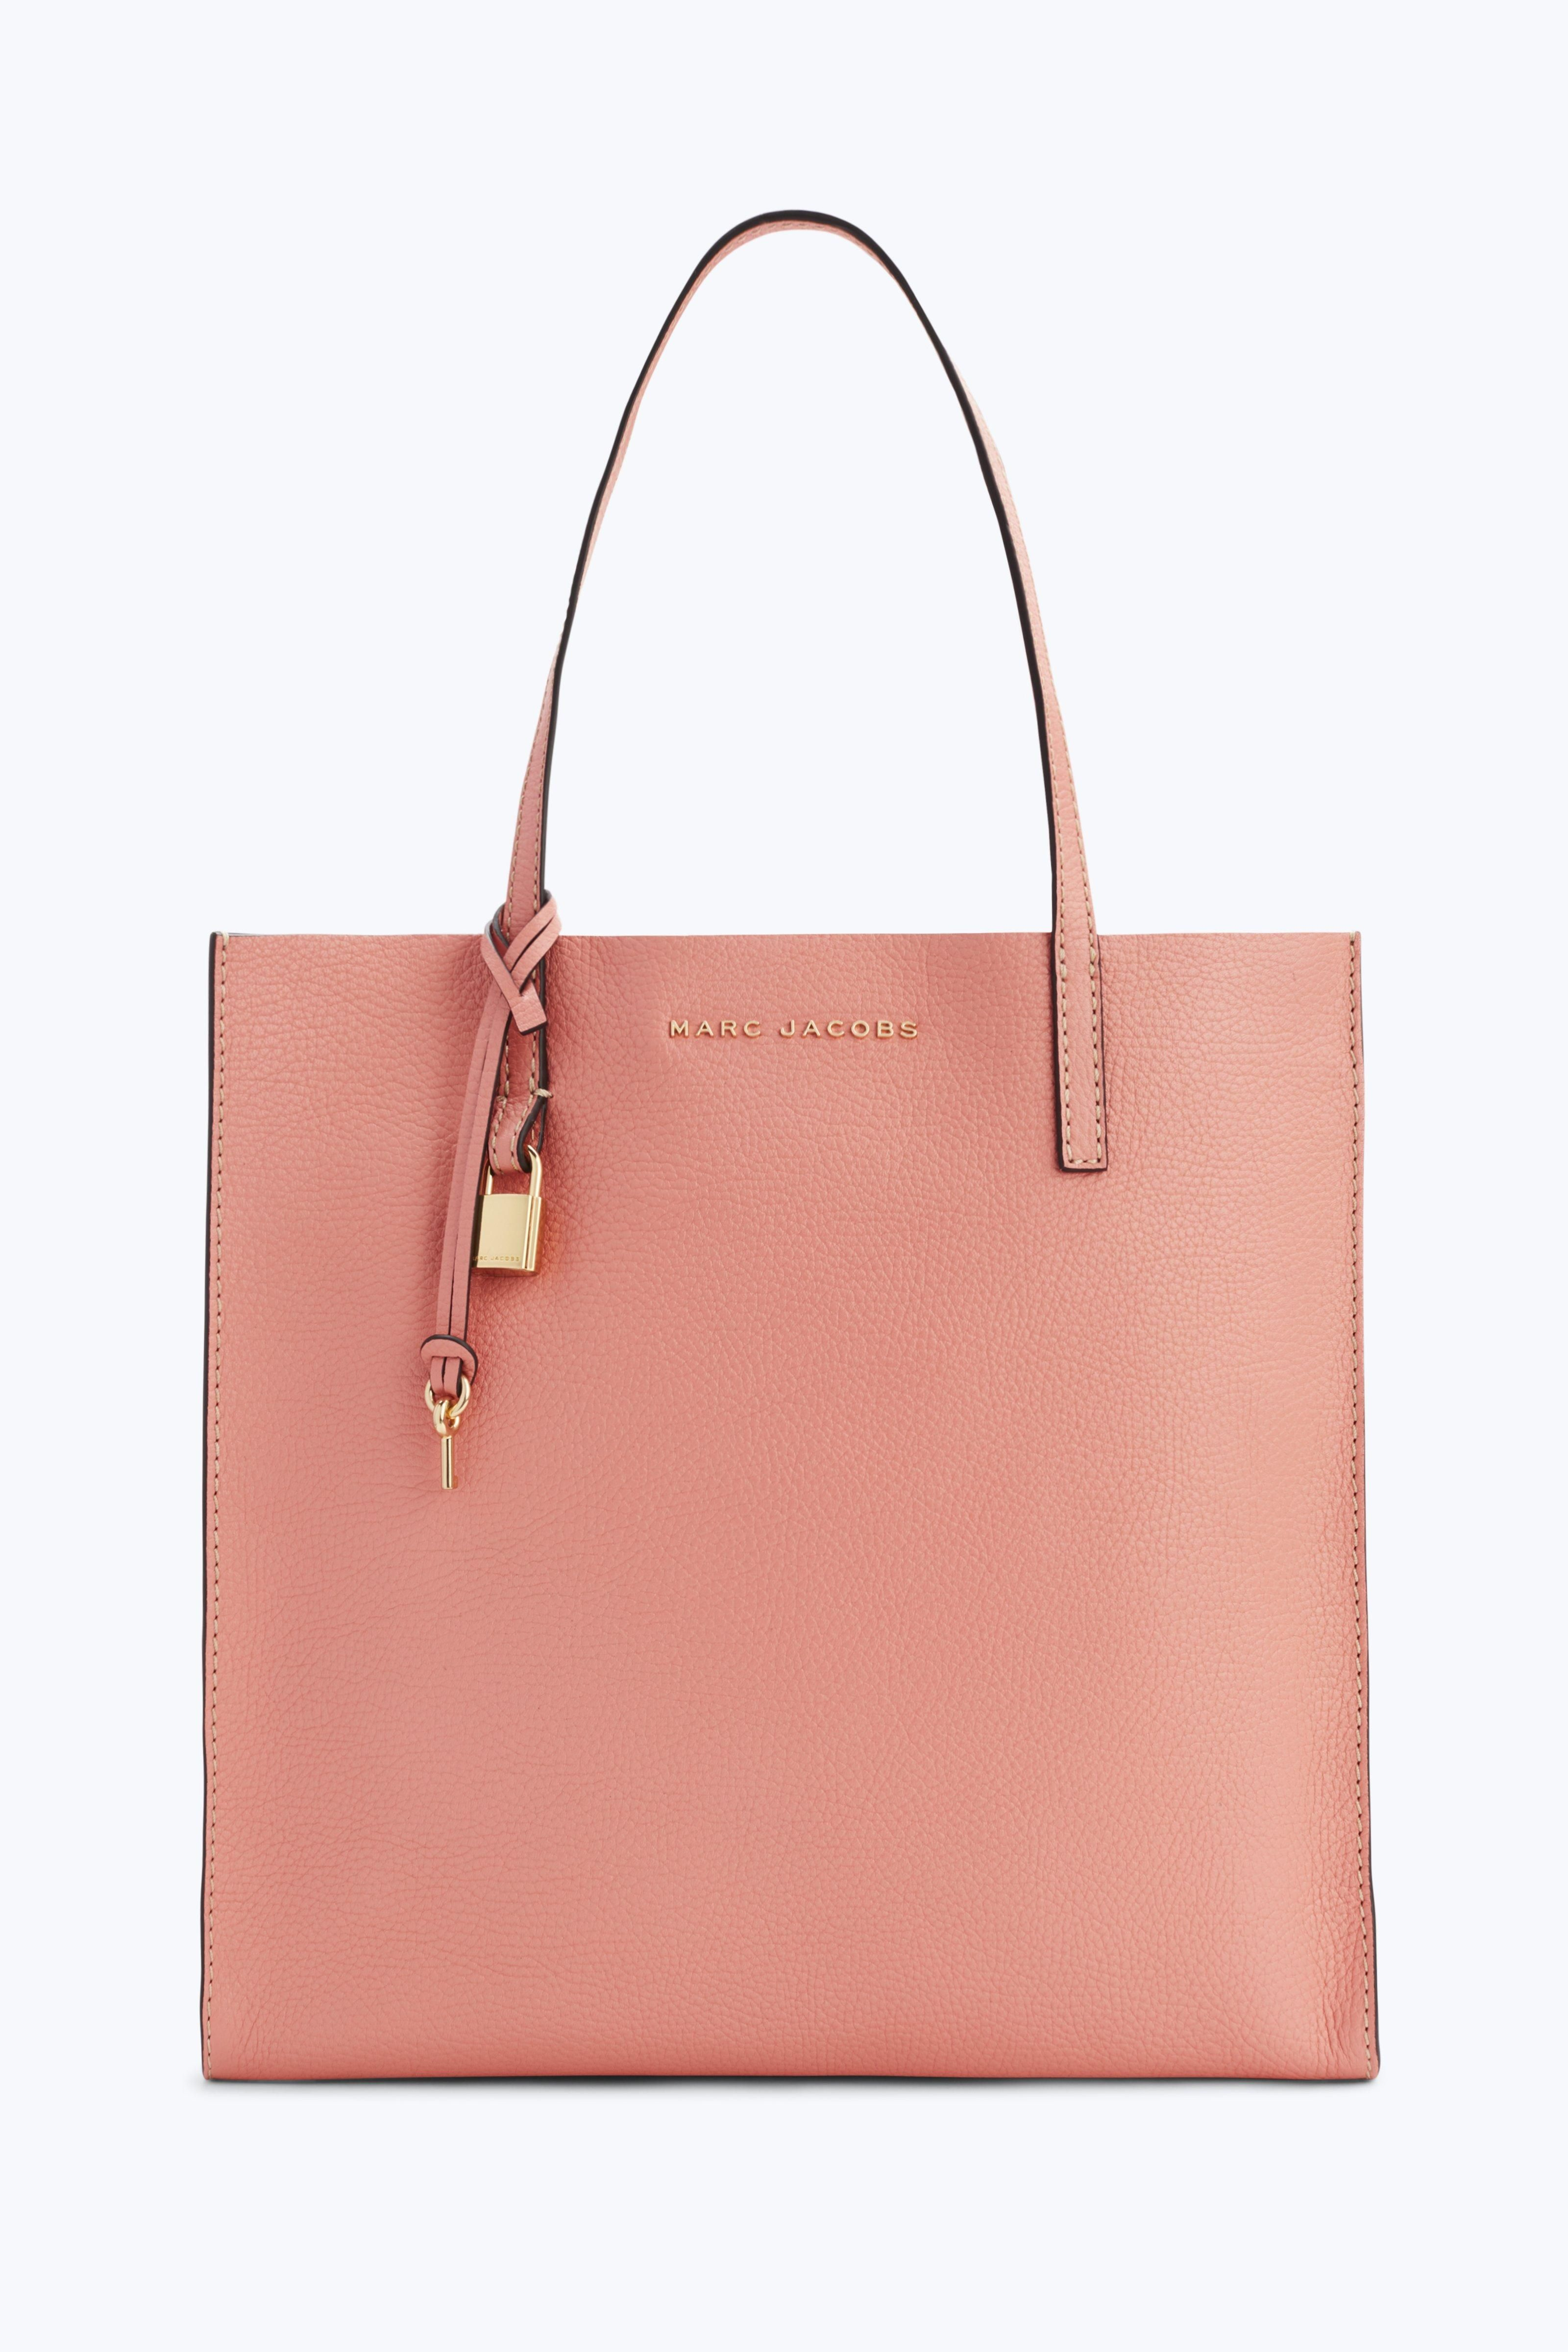 4ae5ac53052c MARC JACOBS The Grind Shopper Tote Bag.  marcjacobs  bags  leather  hand  bags  tote